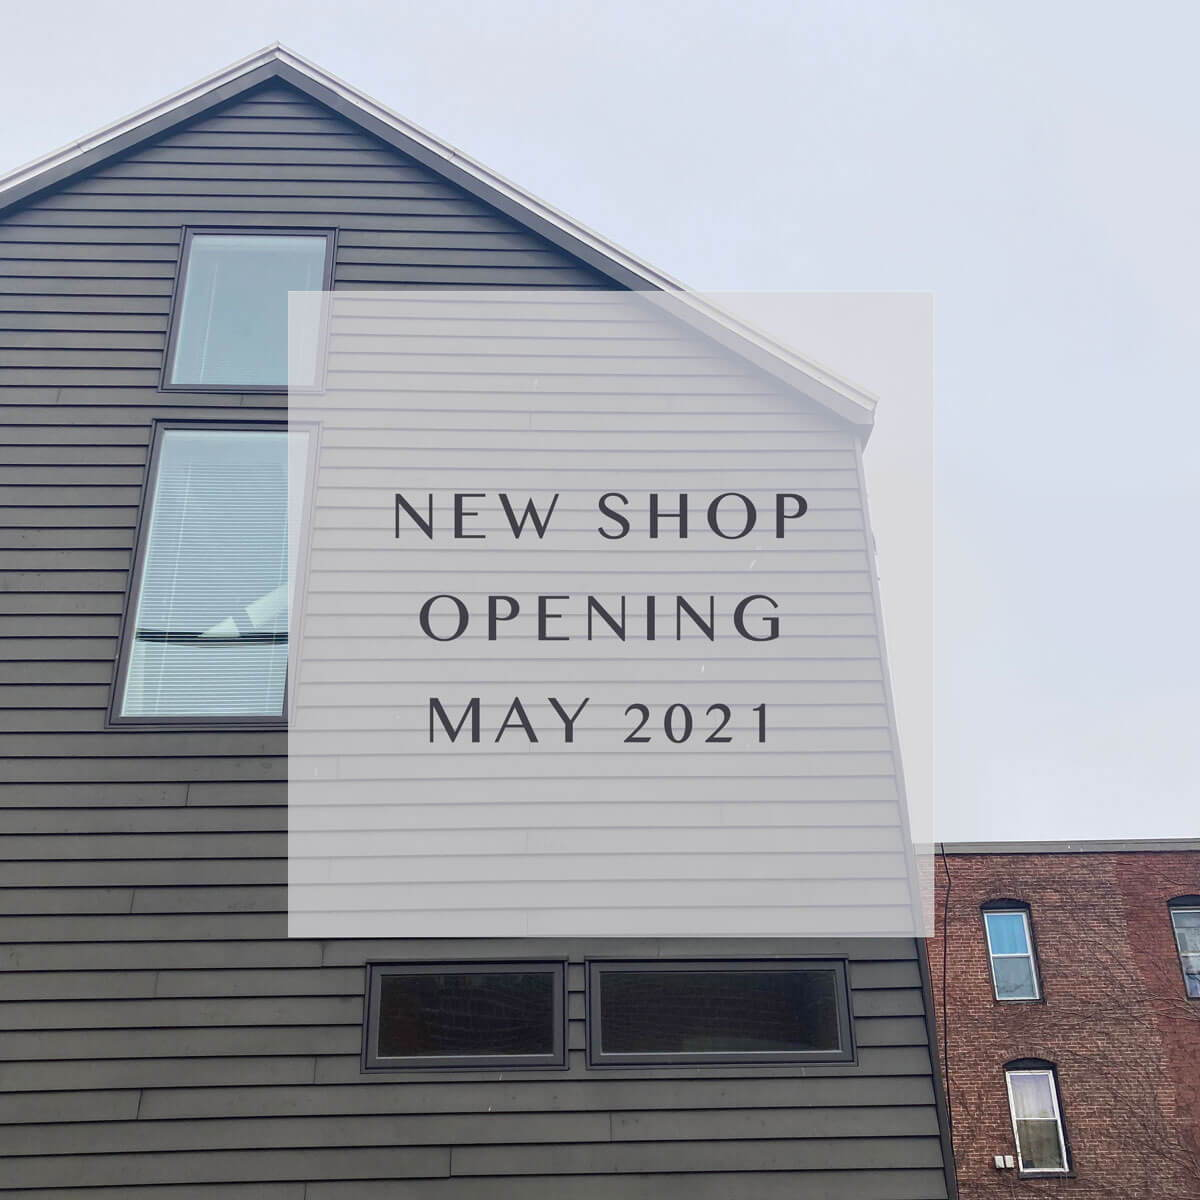 MULXIPLY is based in Portland, Maine. New shop opening May 2021.